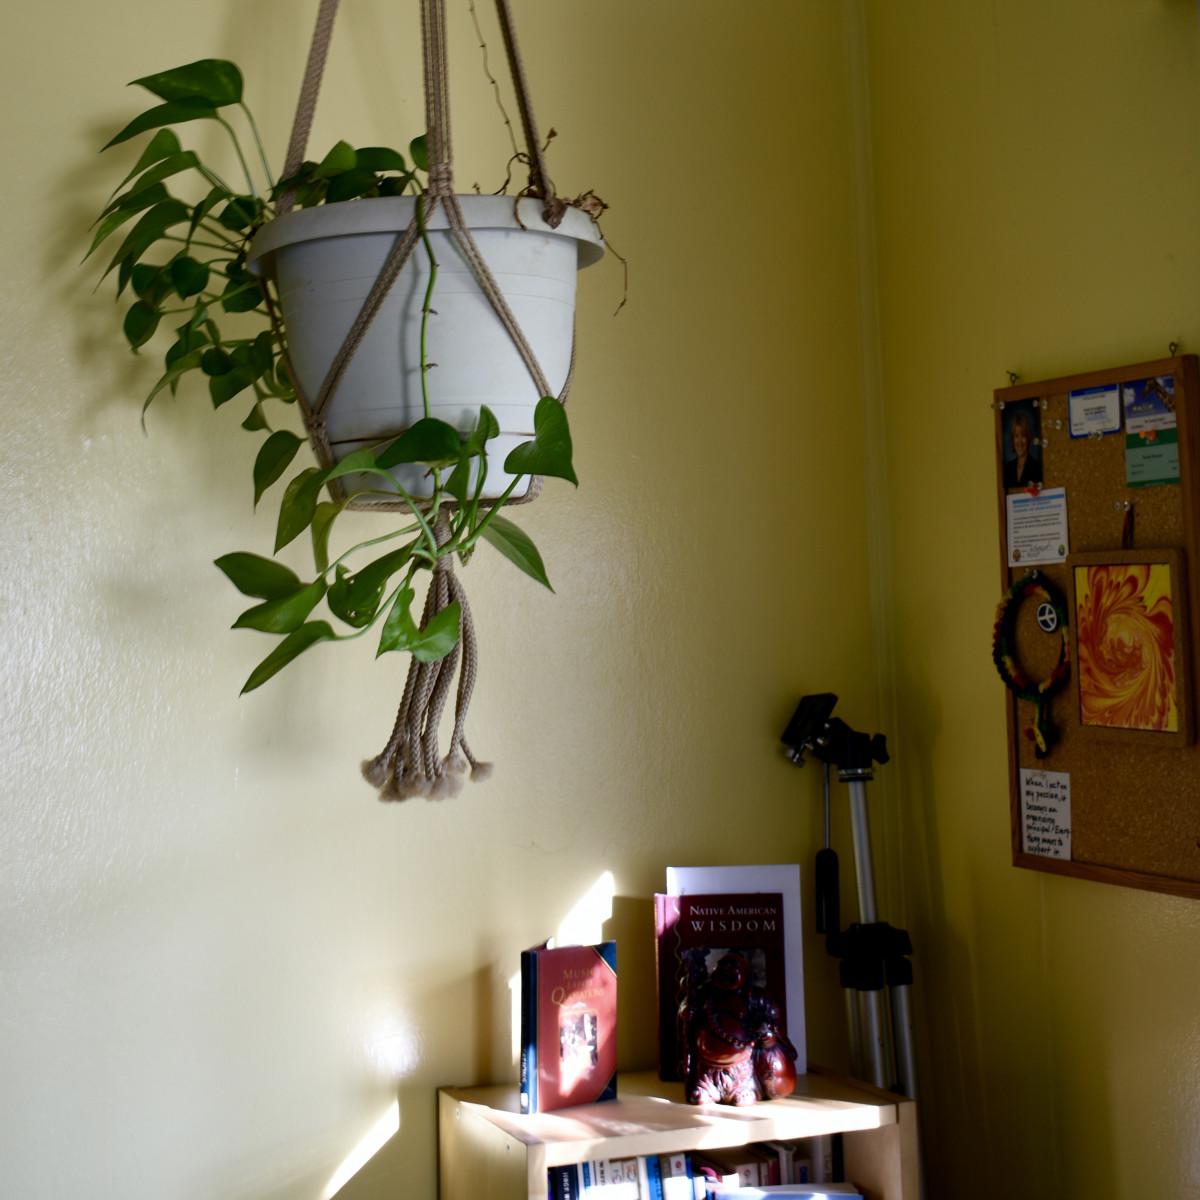 This is the brightest this corner gets during the day. Notice how all the leaves are facing away from the window. They're getting their light elsewhere. Notice also that there's not much coloration on the leaves. That also reflects the lack of light